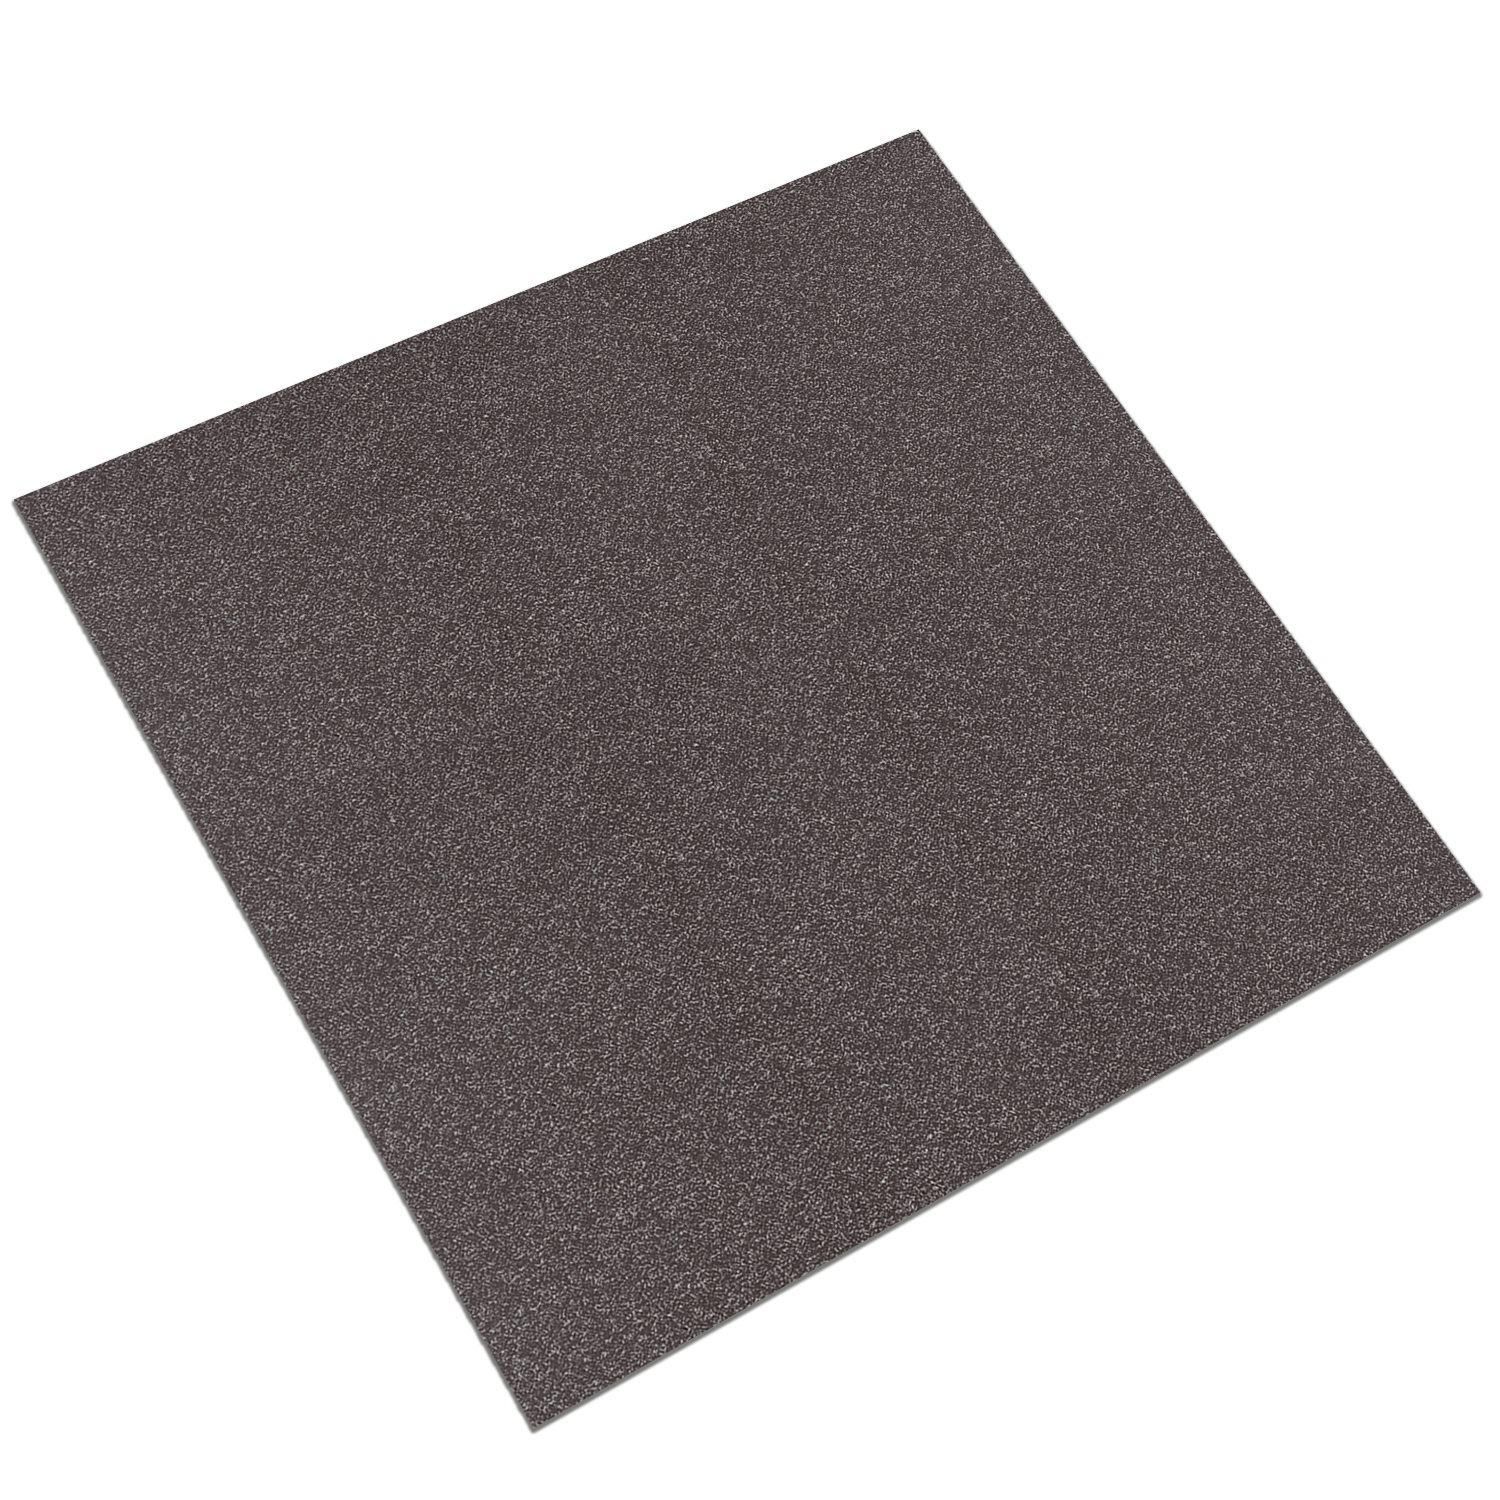 Revetement Sol Exterieur Fin Carrelage Sol Et Mur Courage Grain Fin R10 A Anthracite